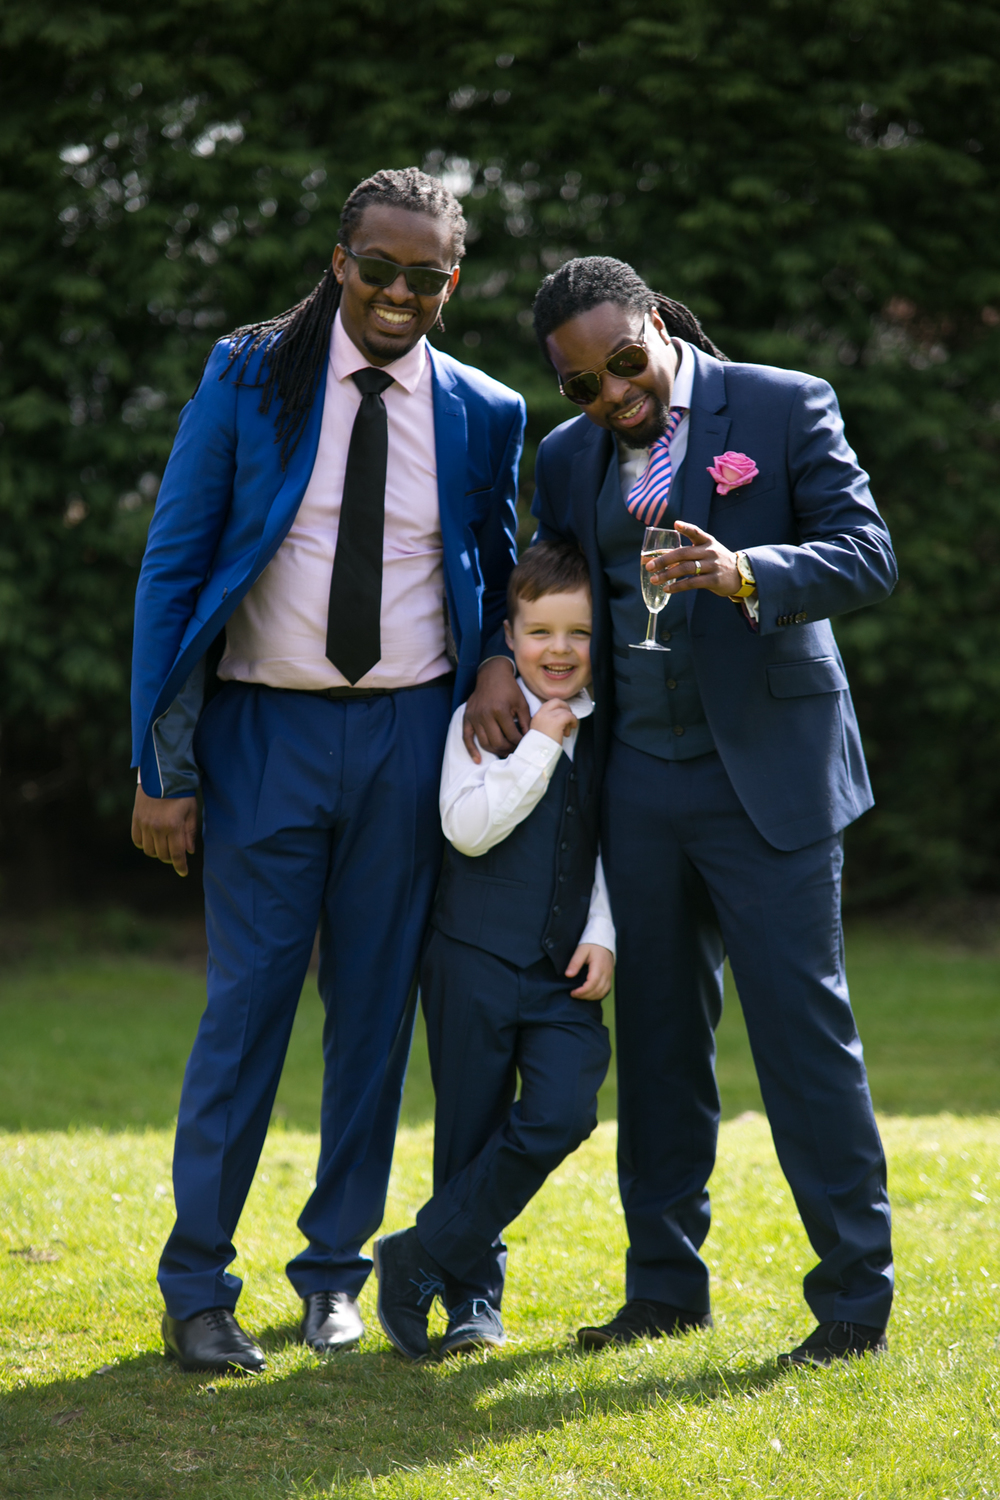 London & Kent Wedding Photographer Ojomo Photography